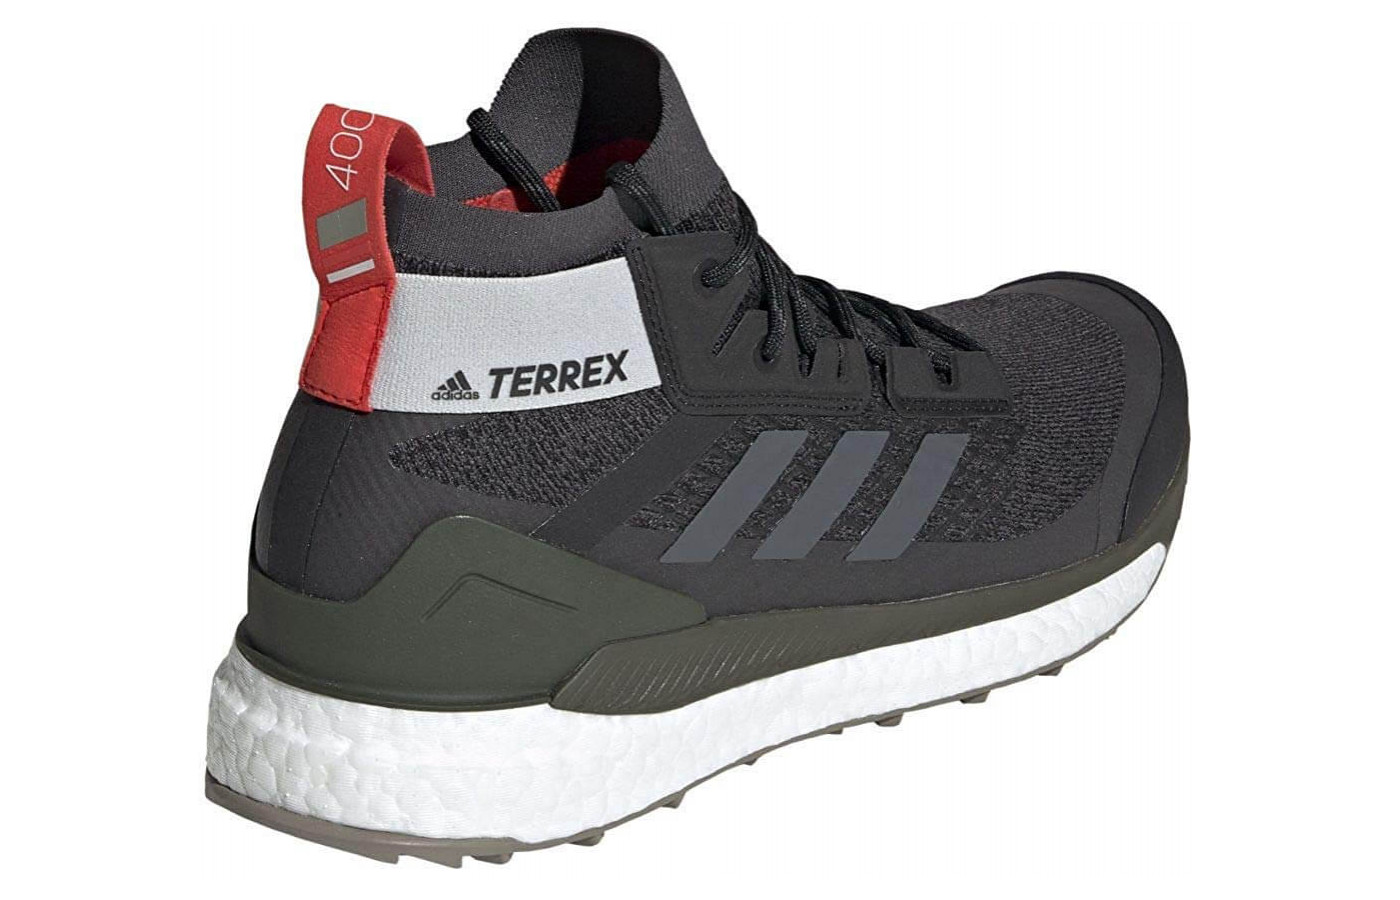 Adidas Outdoor Terrex Free Rear